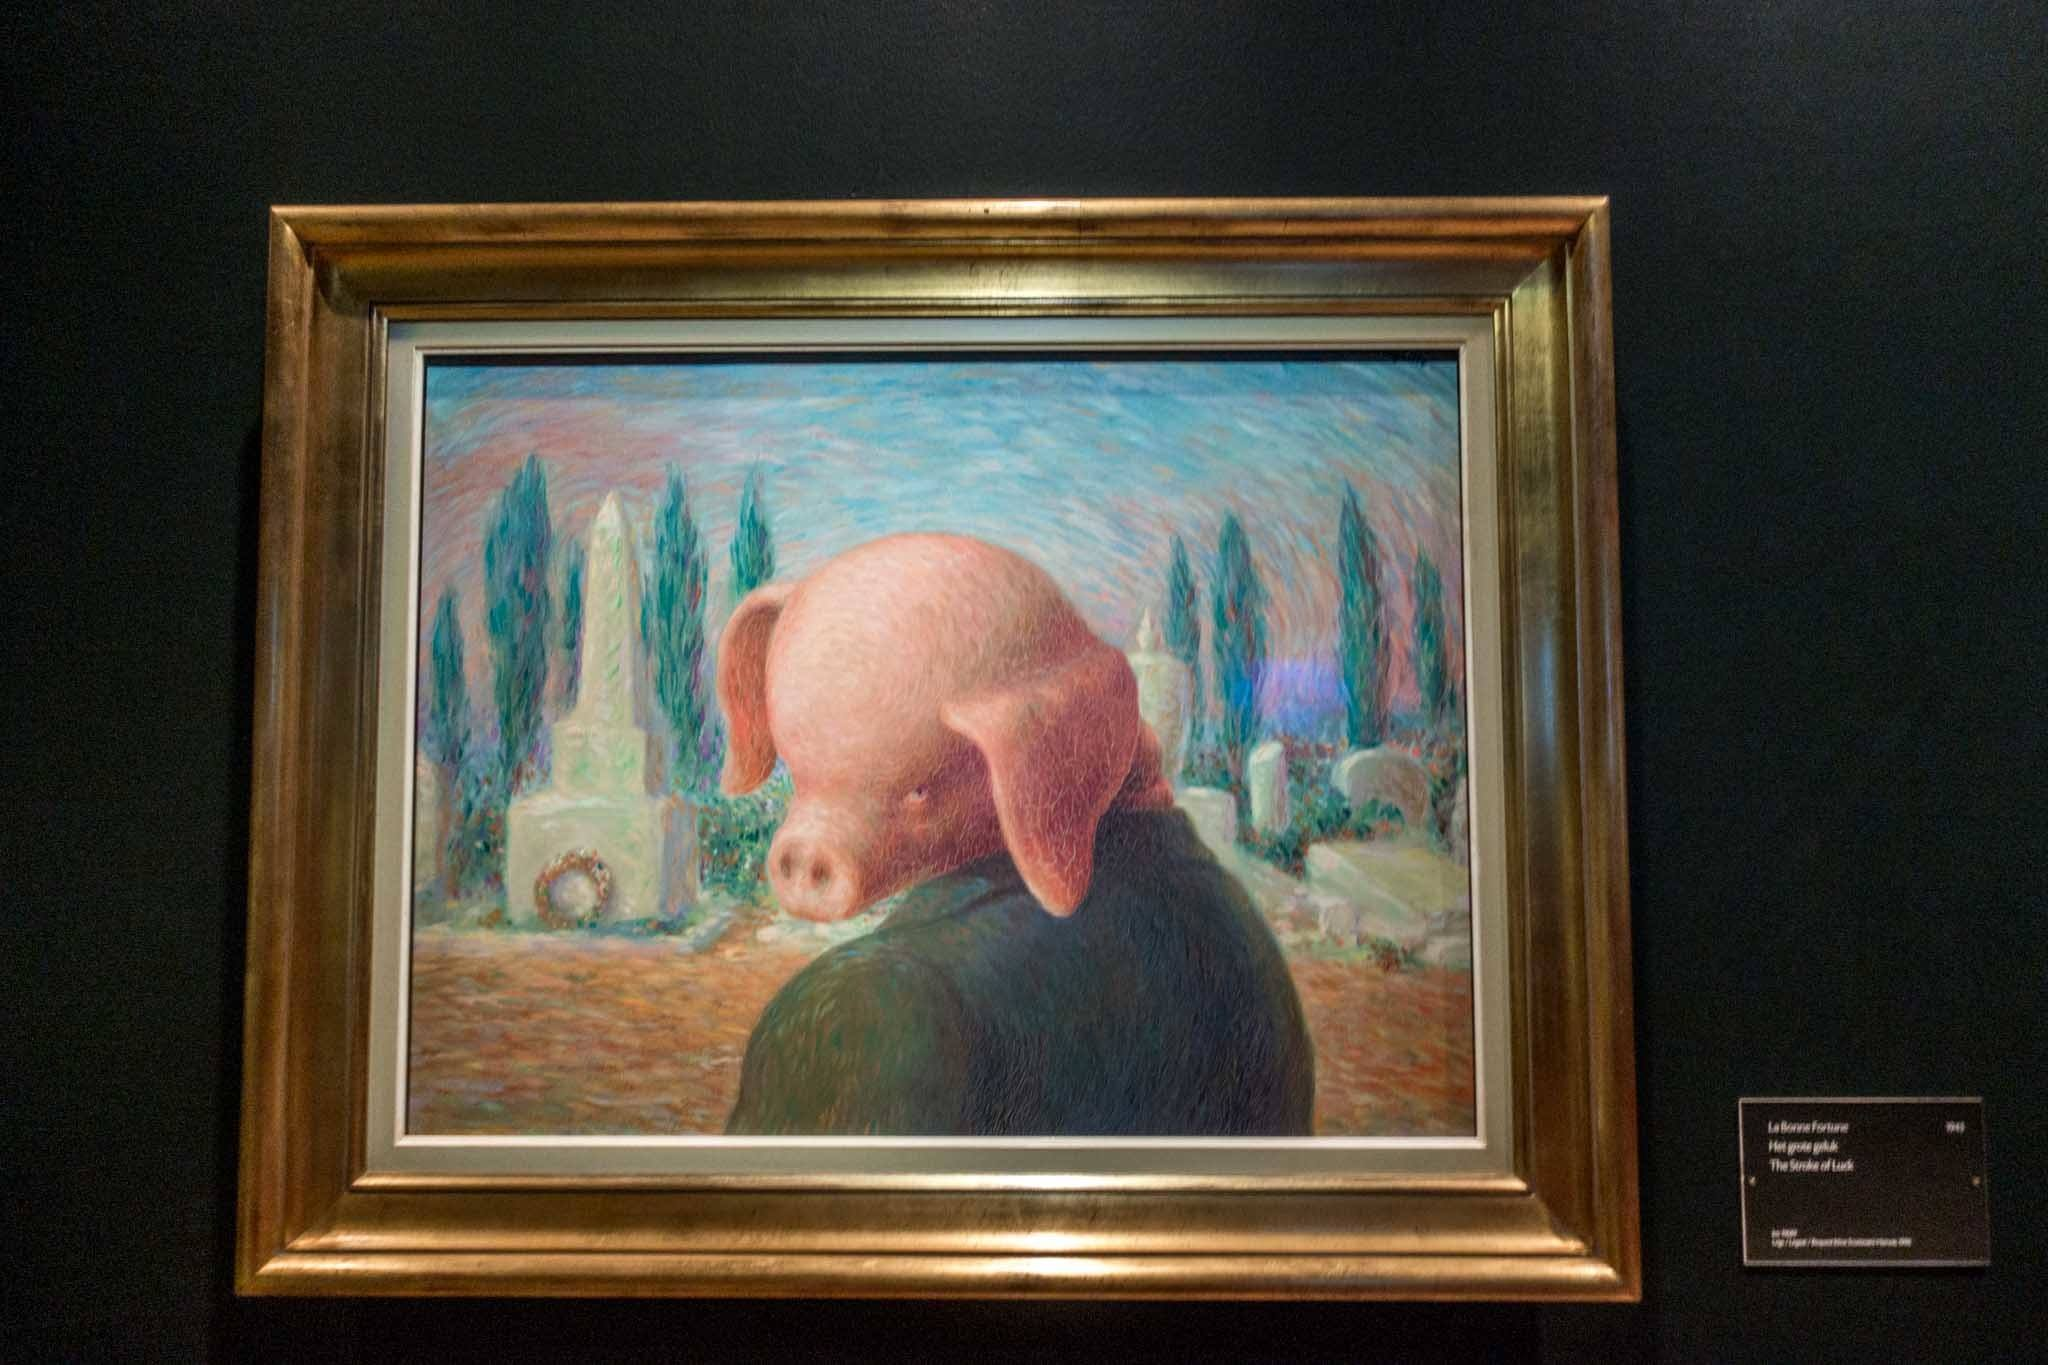 Painting by Magritte of figure with pig head and human body